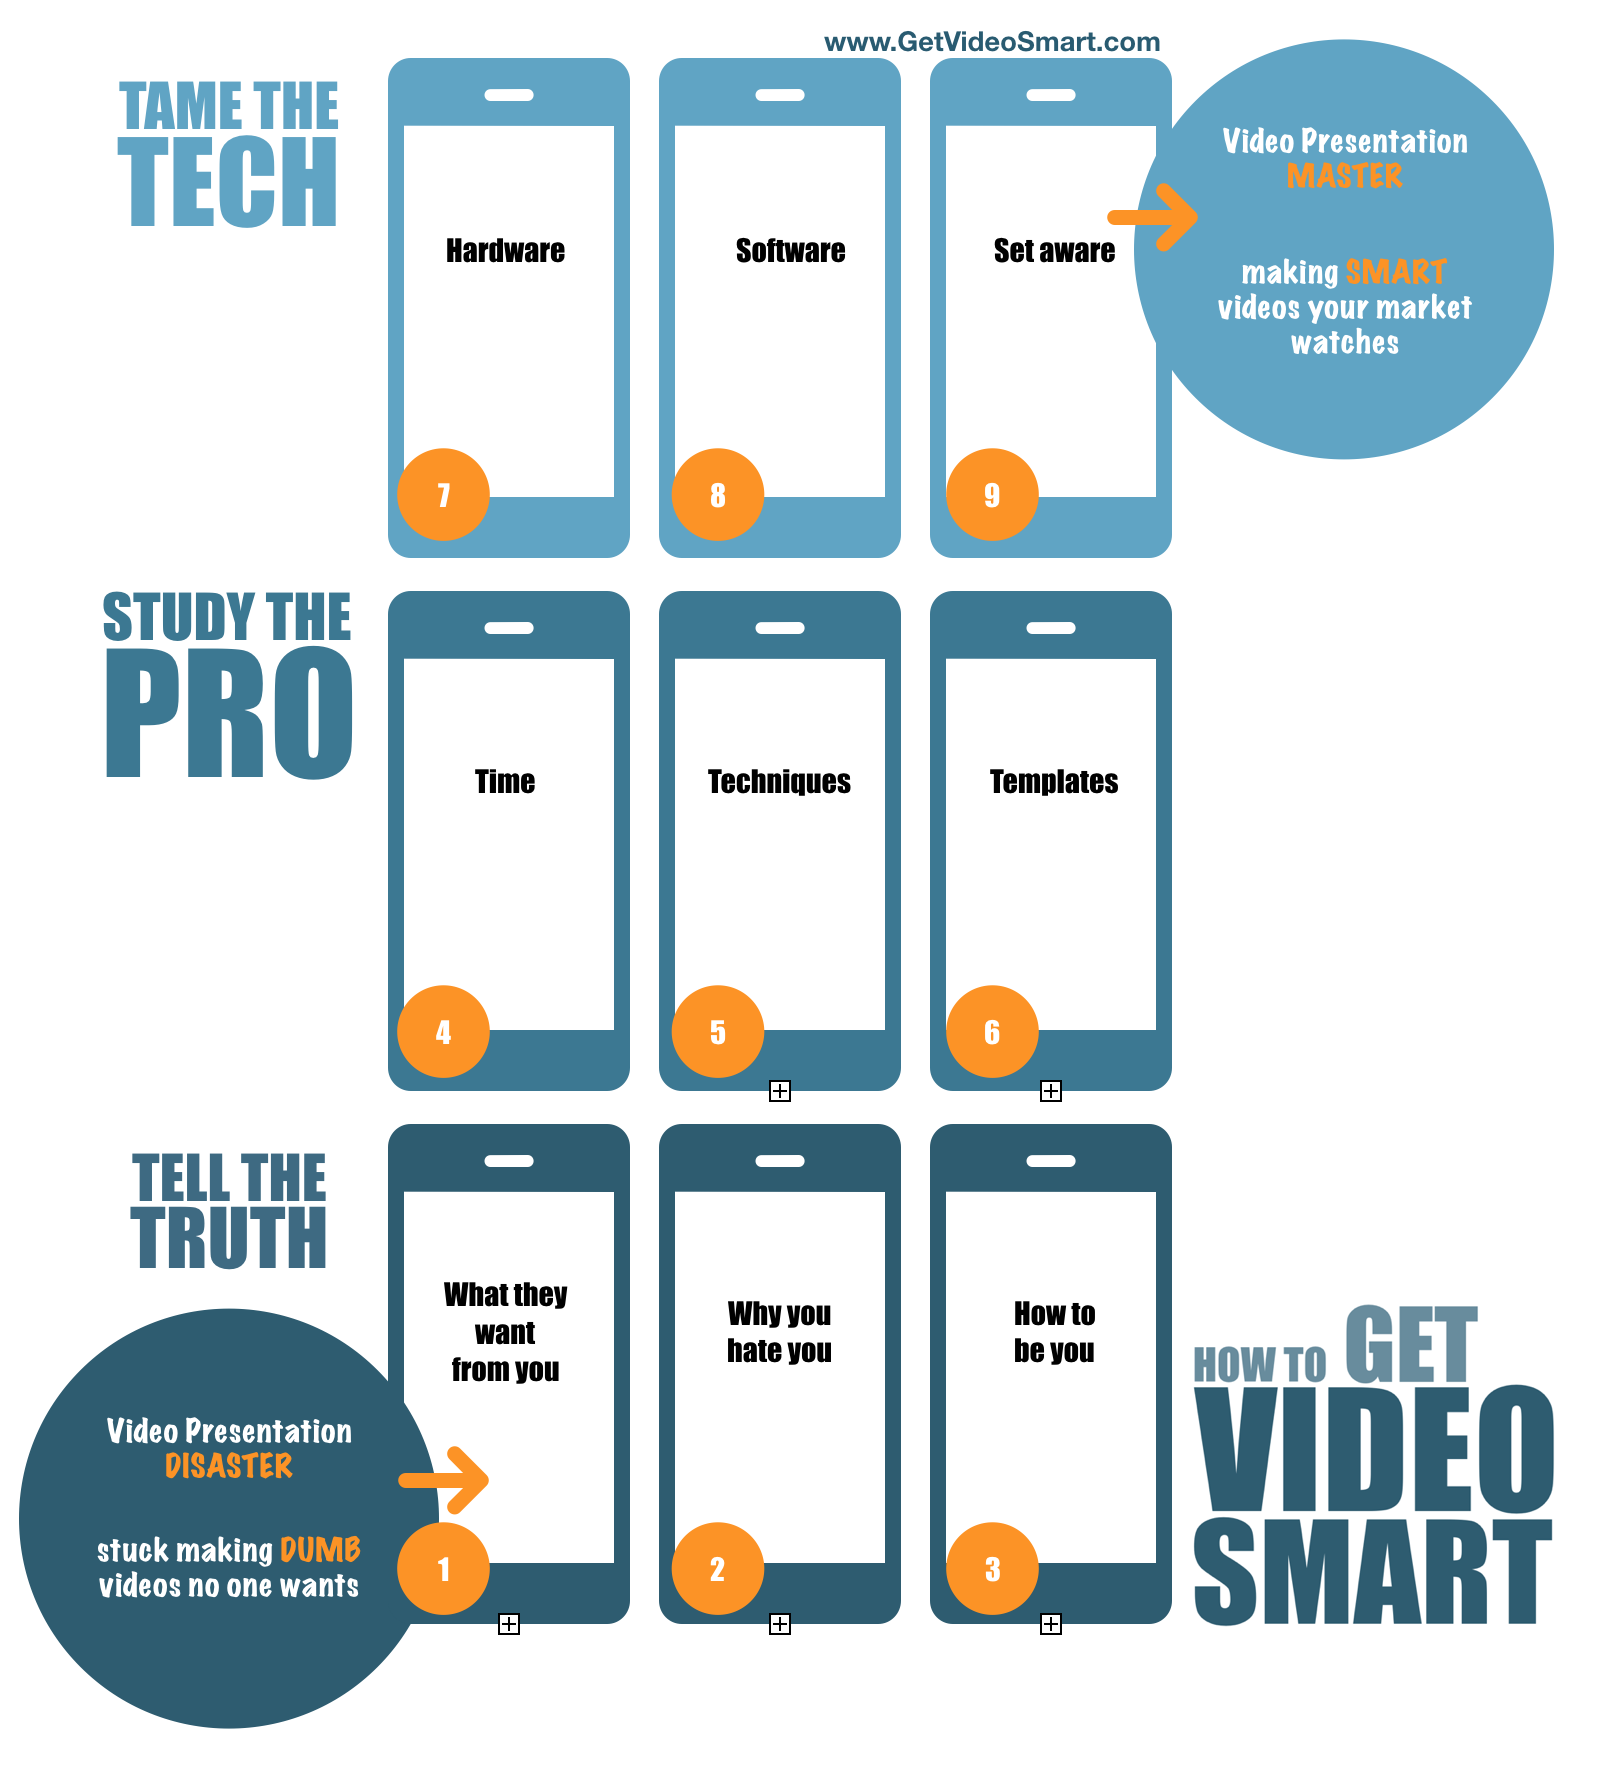 9 step to getting video smart